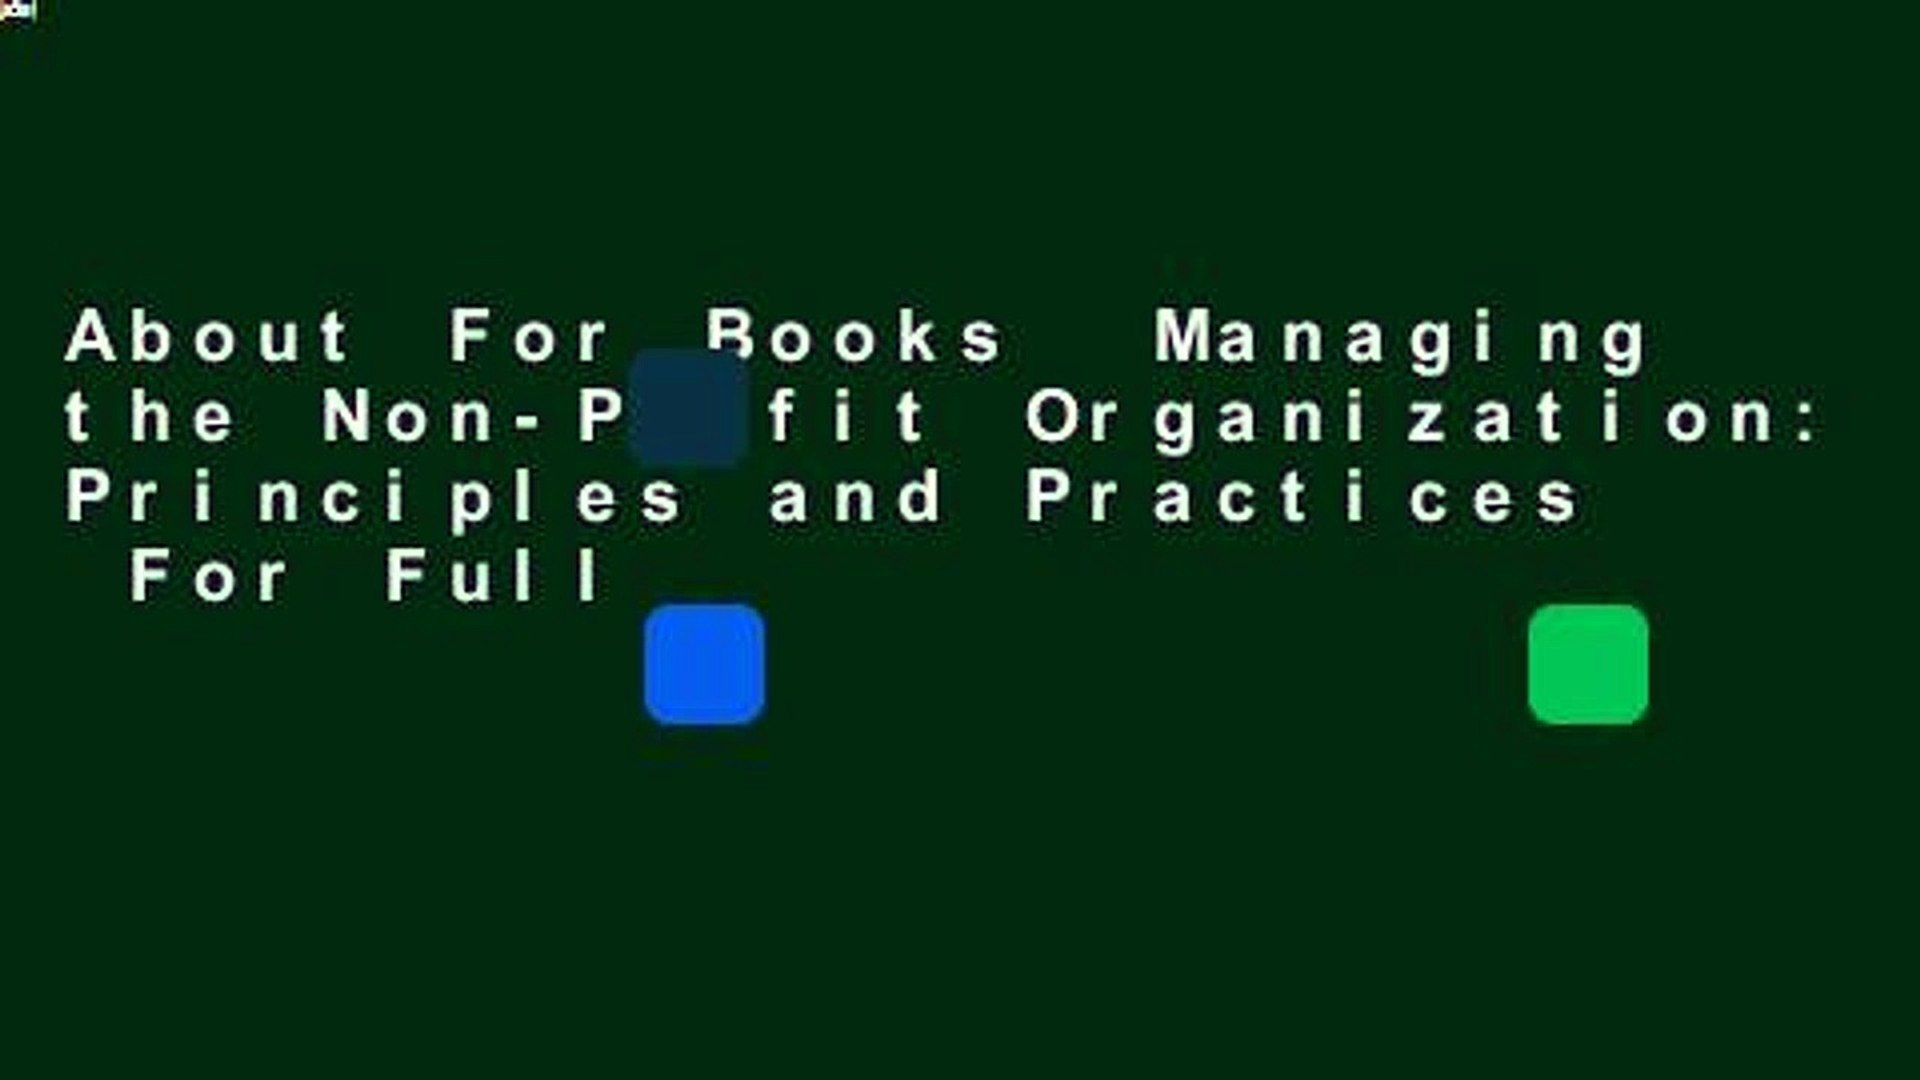 About For Books  Managing the Non-Profit Organization: Principles and Practices  For Full